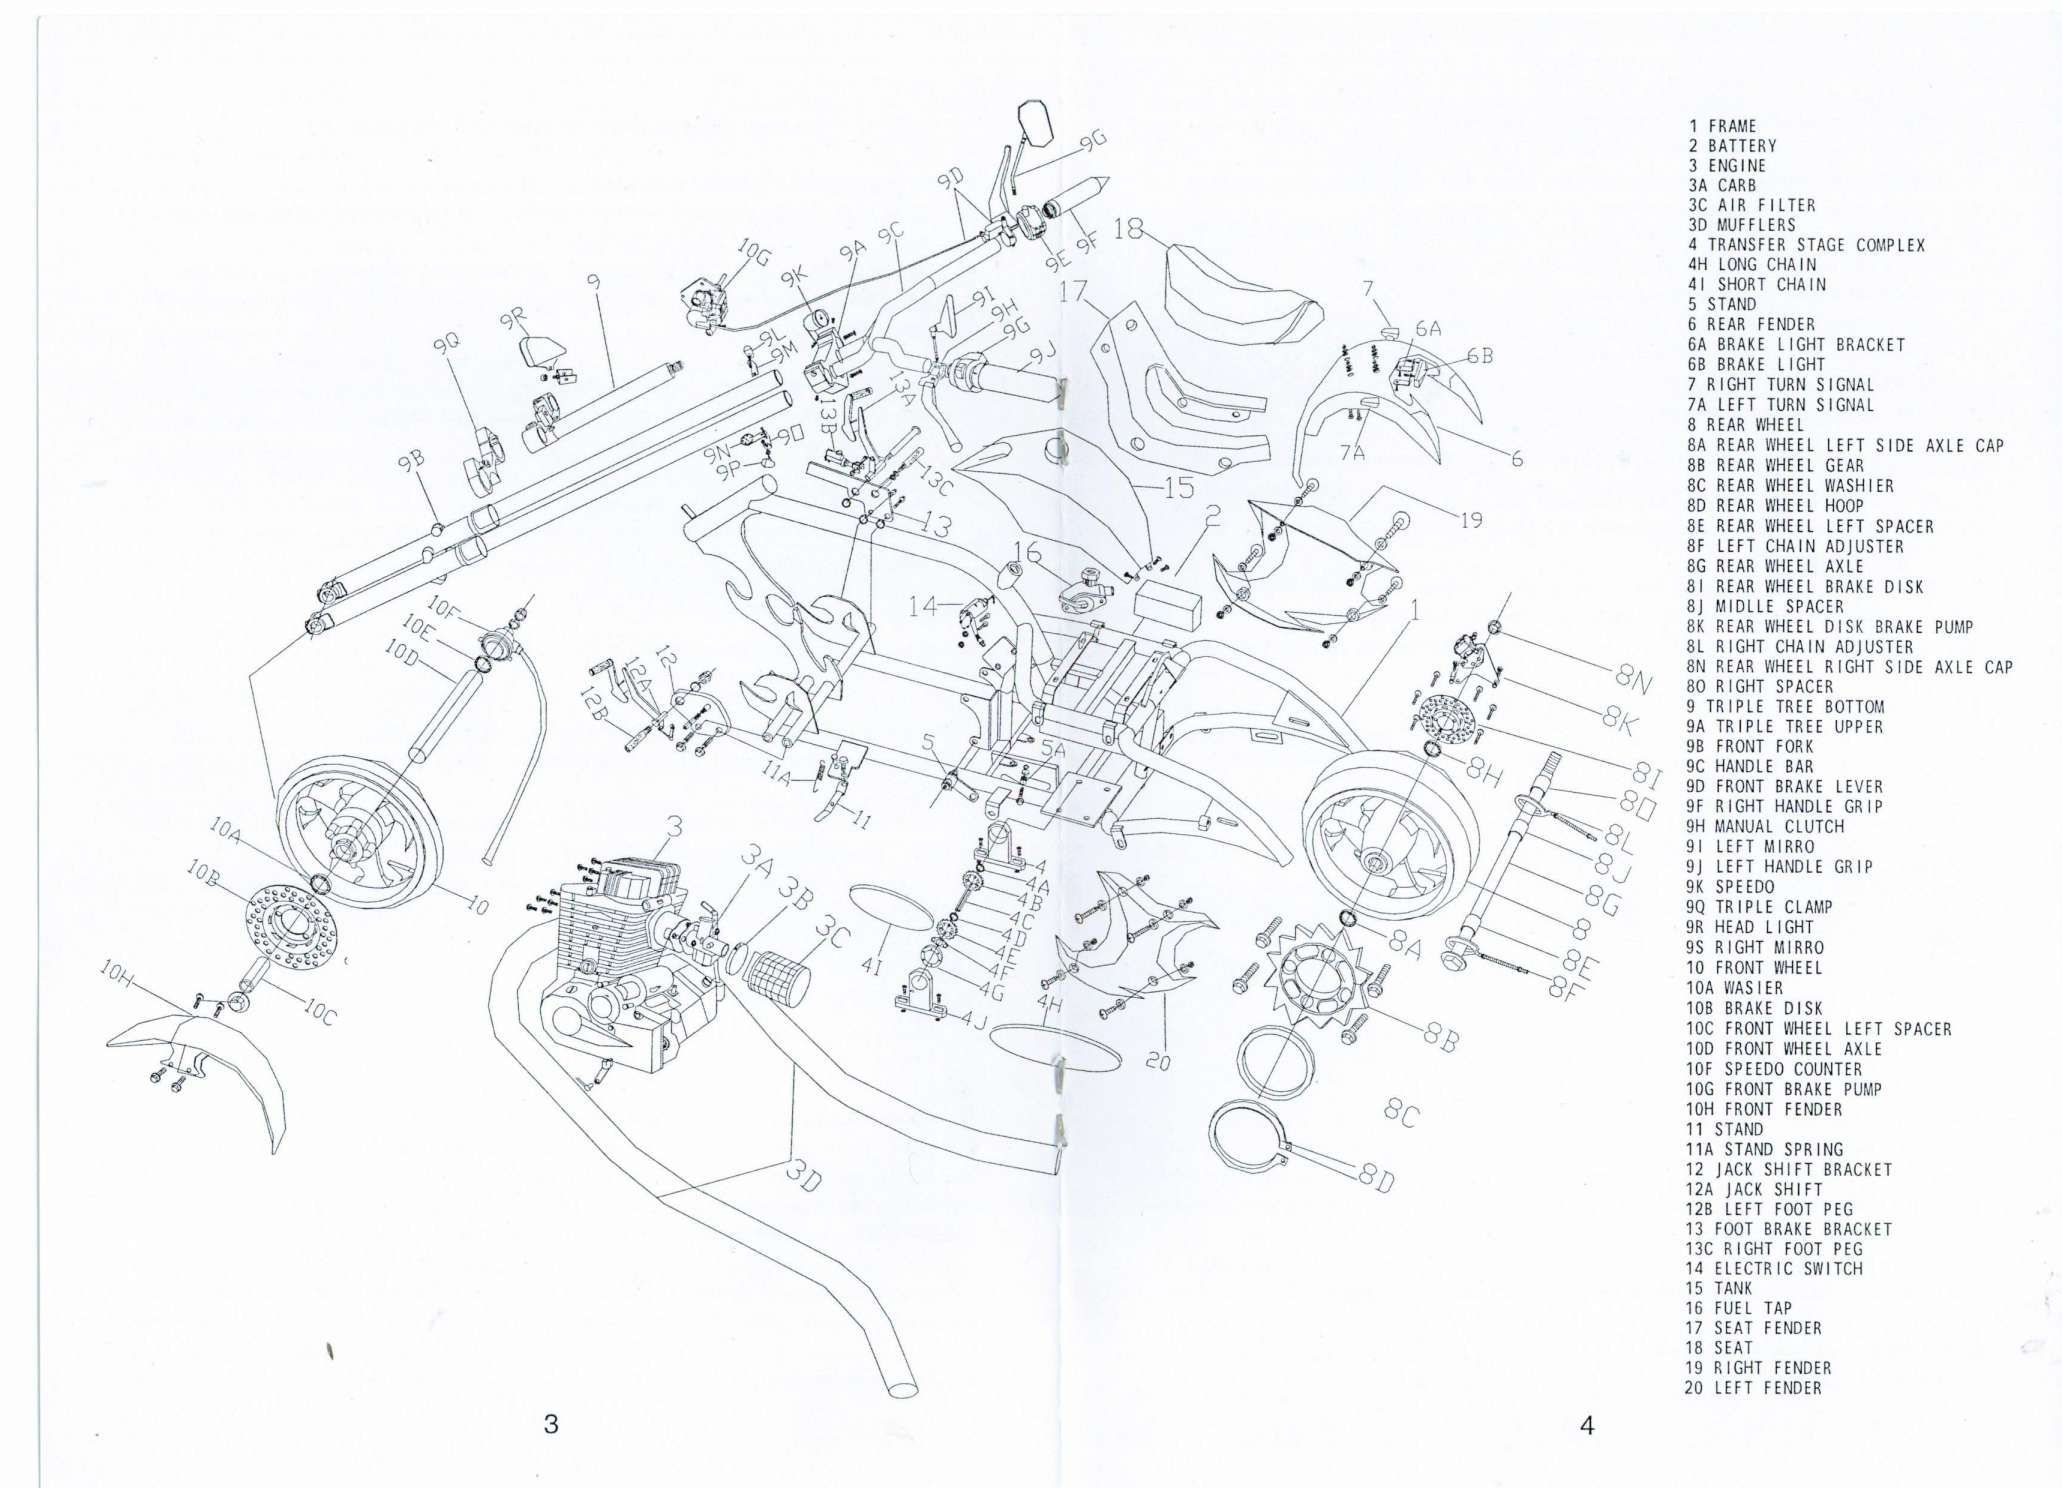 Electric Scooter Wiring Diagram Owner U0026 39 S Manual And Scooter